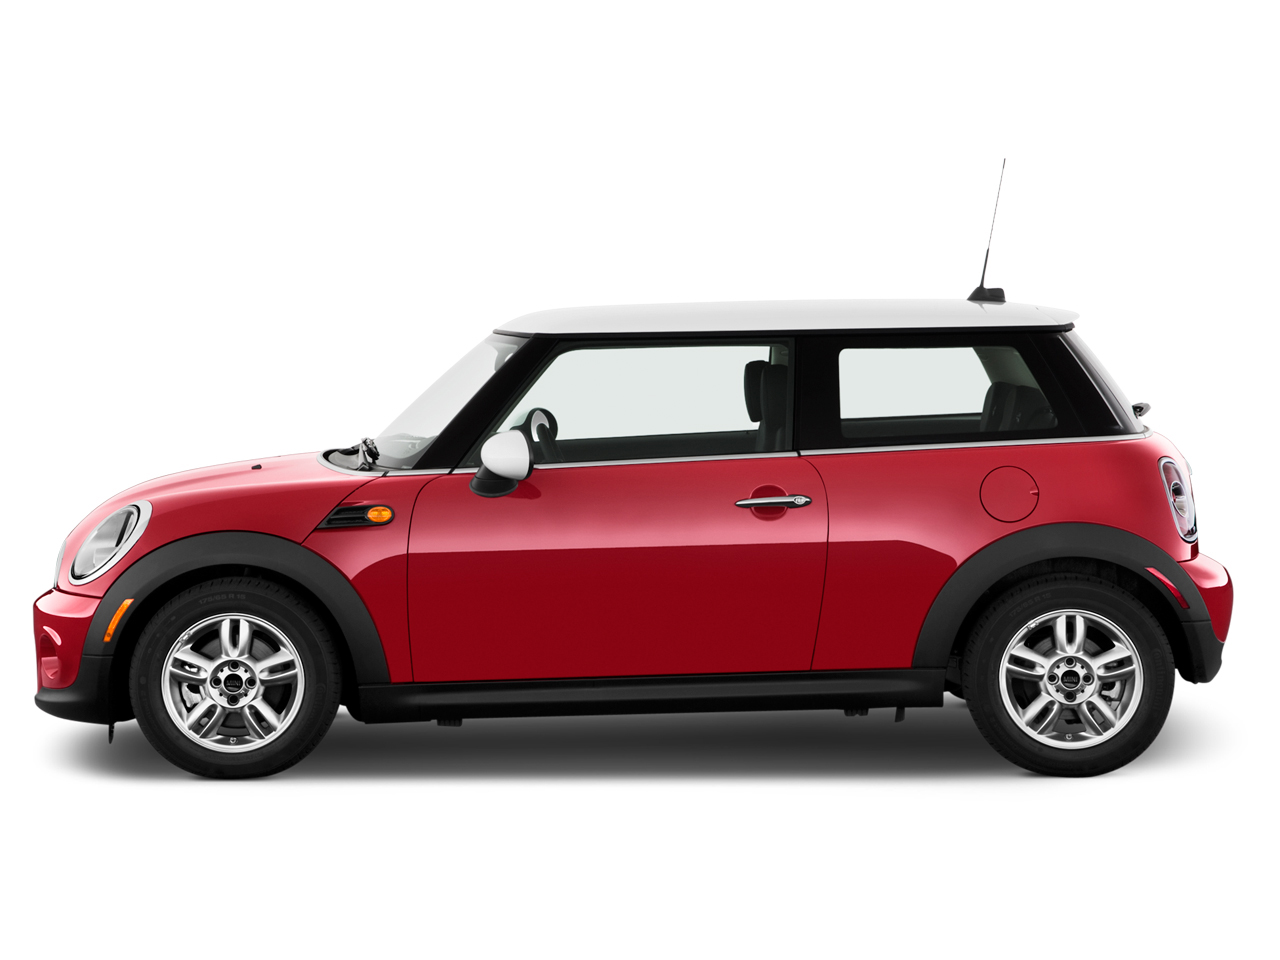 2012 MINI Cooper Safety Review And Crash Test Ratings